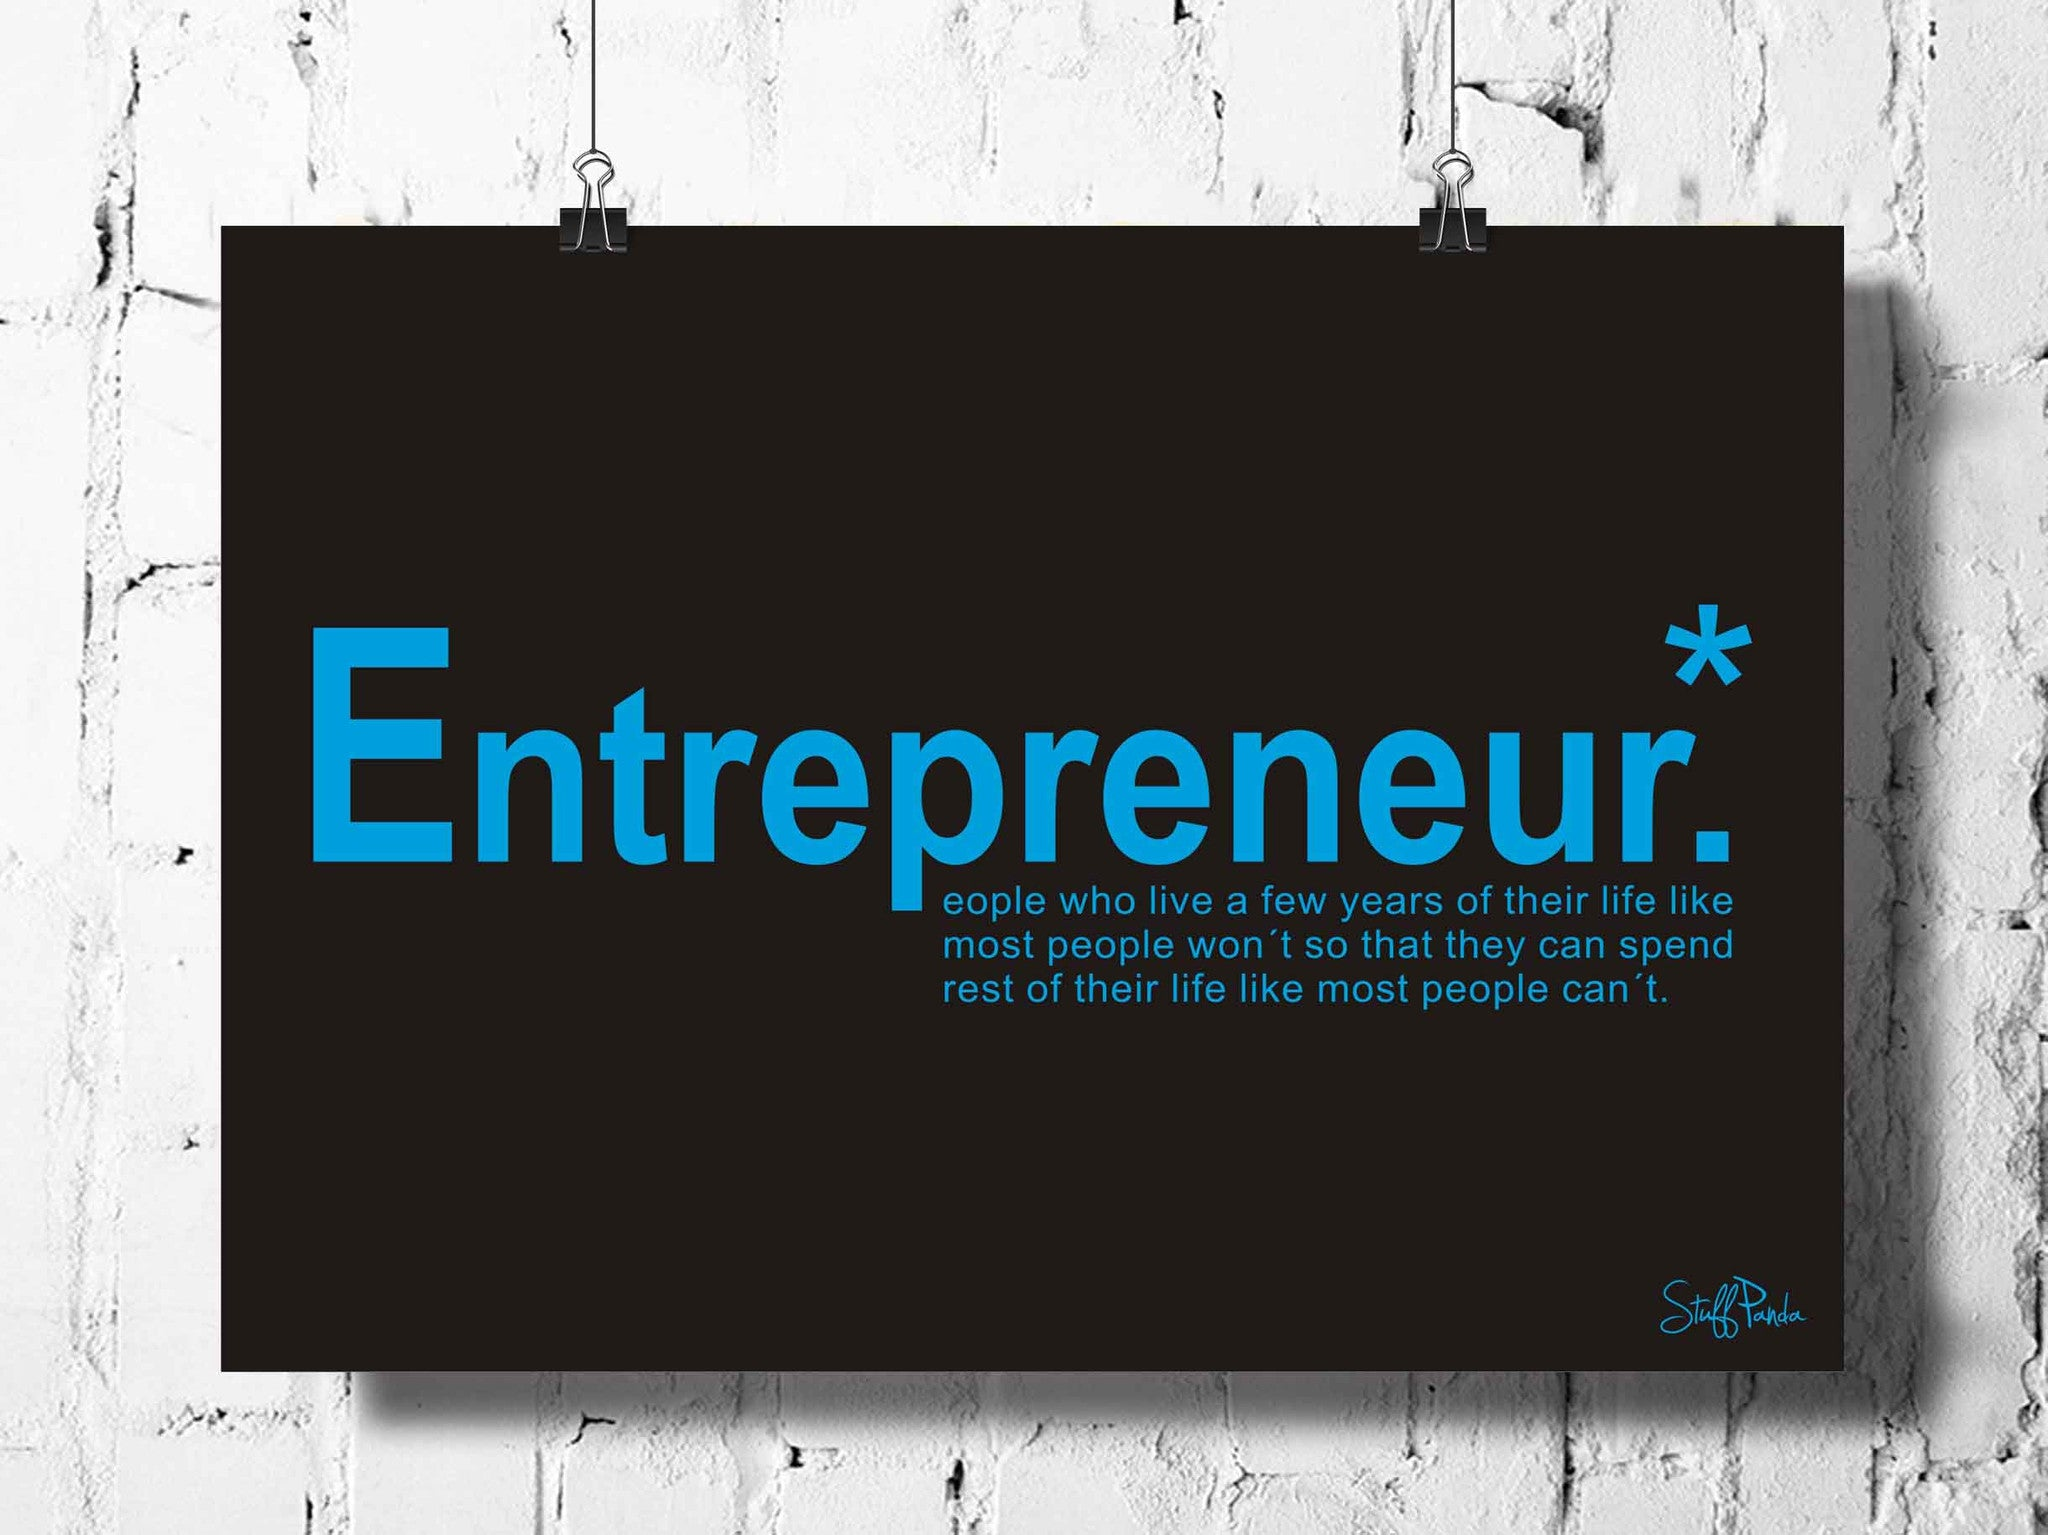 Cool Funky Motivational Business Entrepreneur wall posters art prints stickers decals B n blue  sc 1 st  stuffpanda & Cool Funky Motivational Business Entrepreneur wall posters art ...